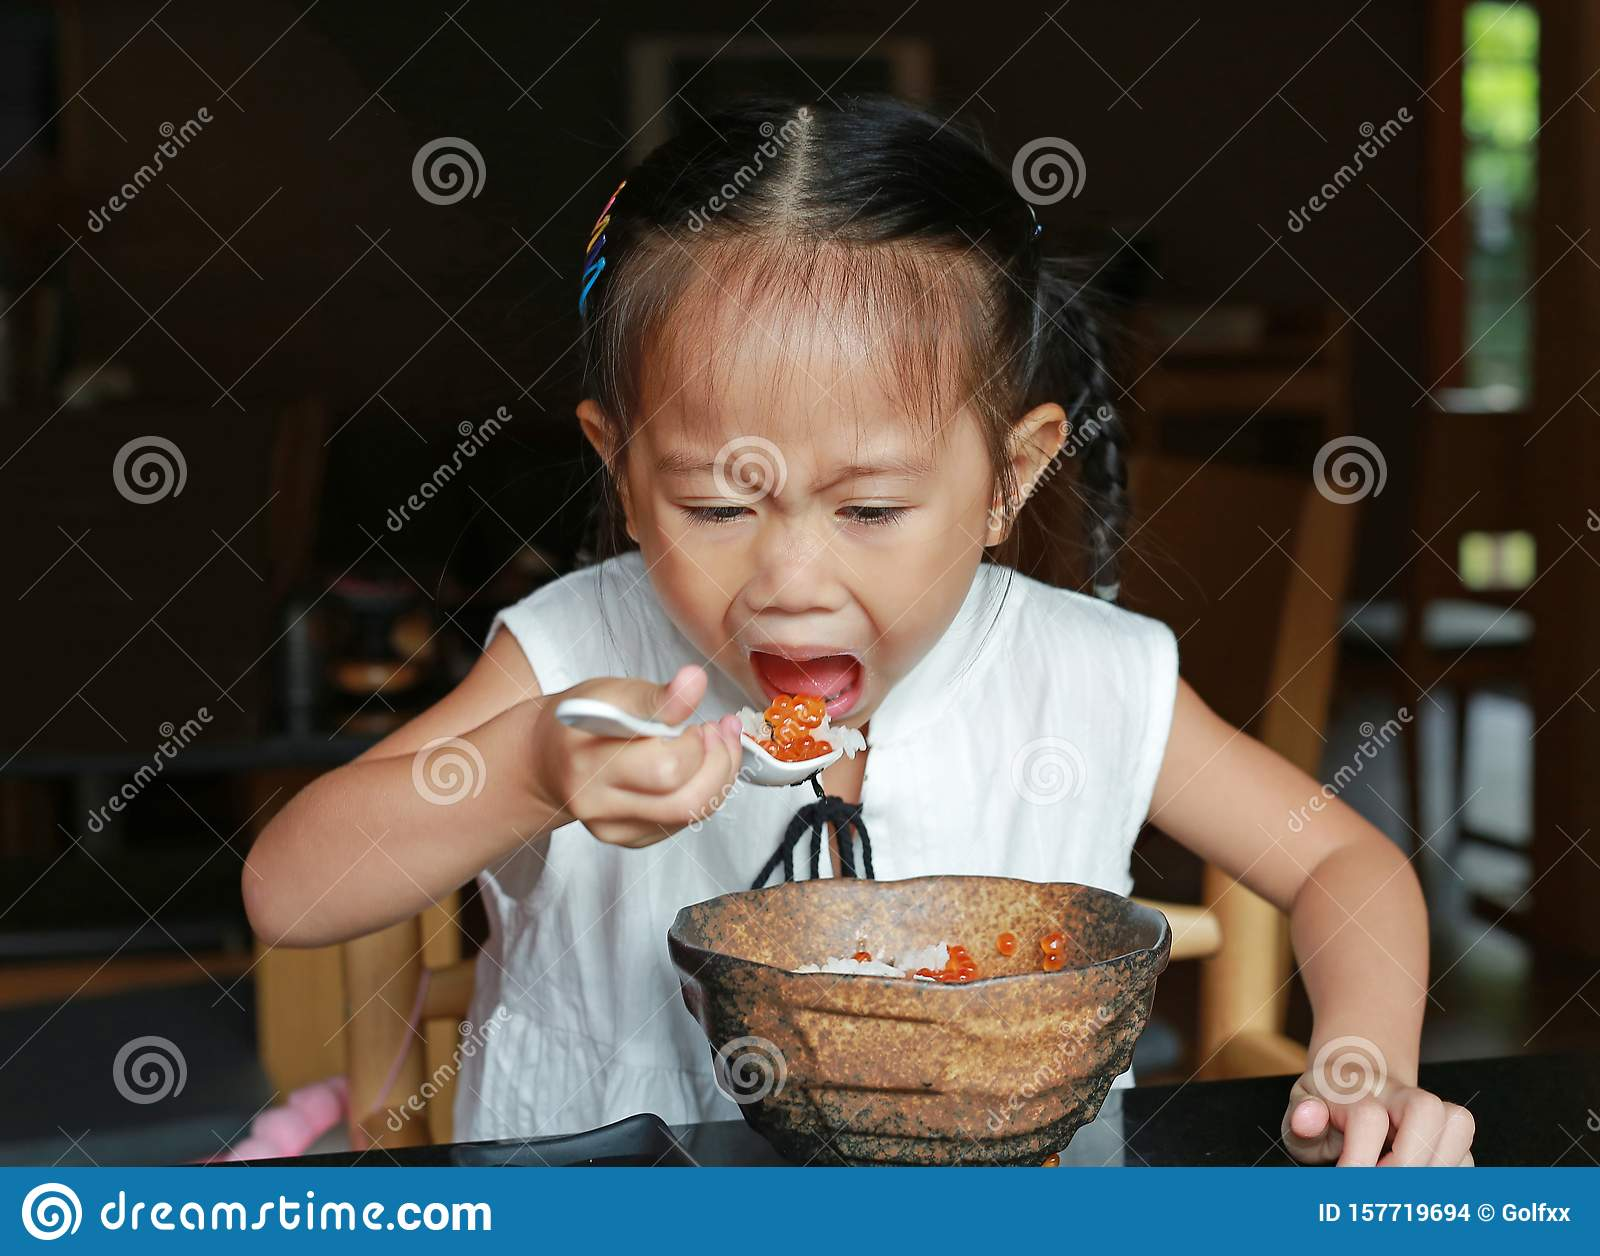 Asian kid girl eating delicious food on table for lunch in the restaurant